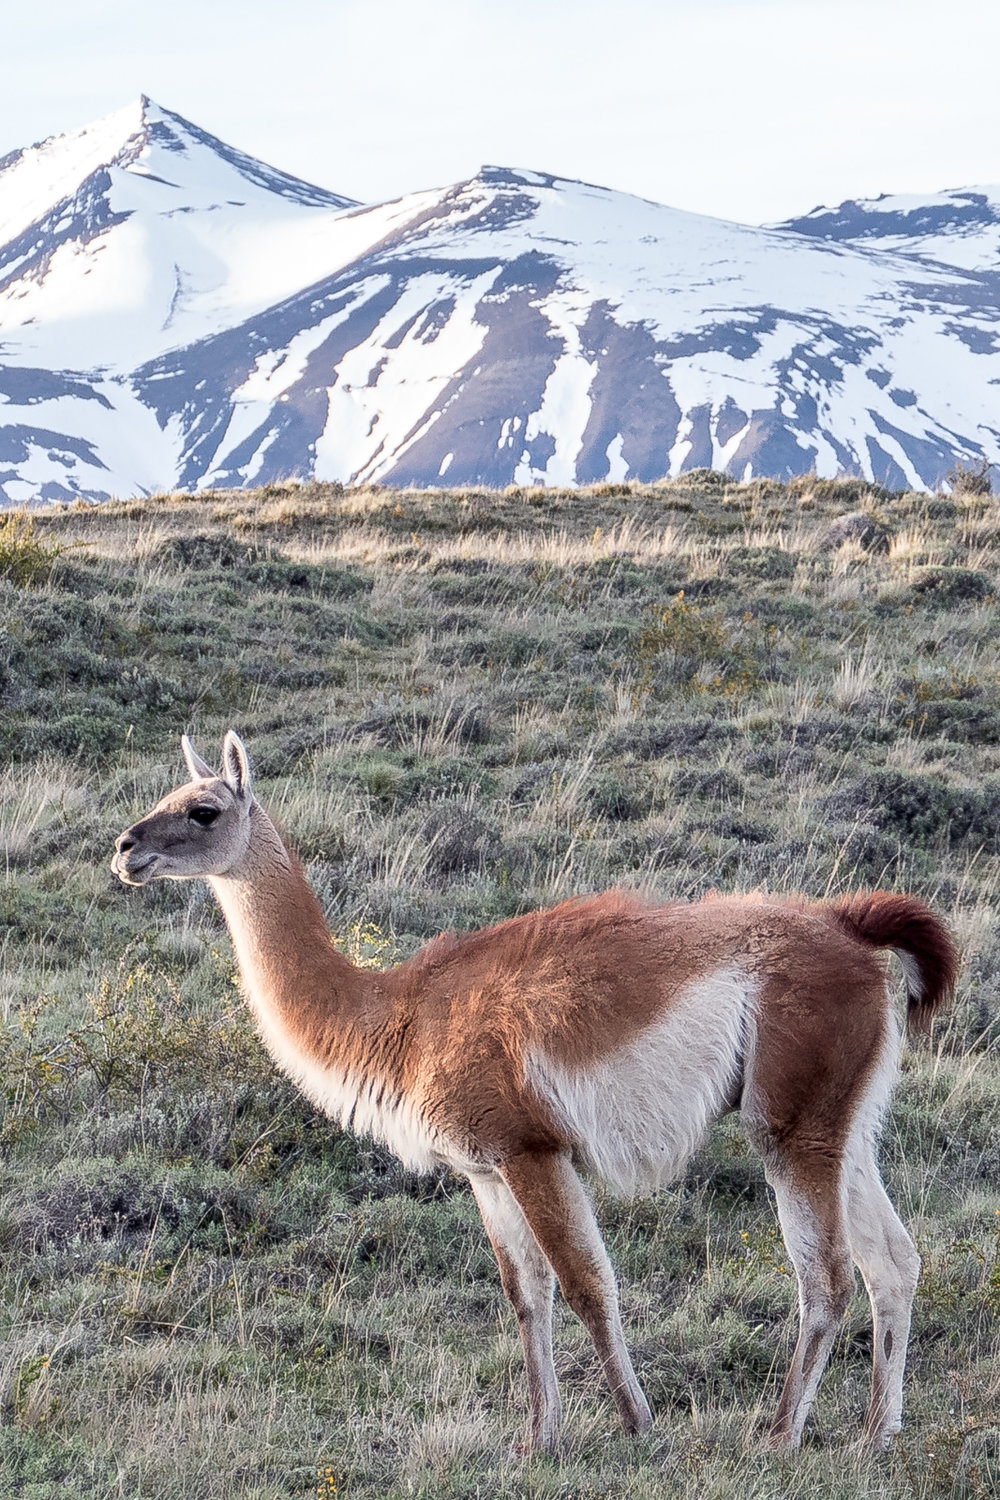 Guanaco against the mountains at sunset